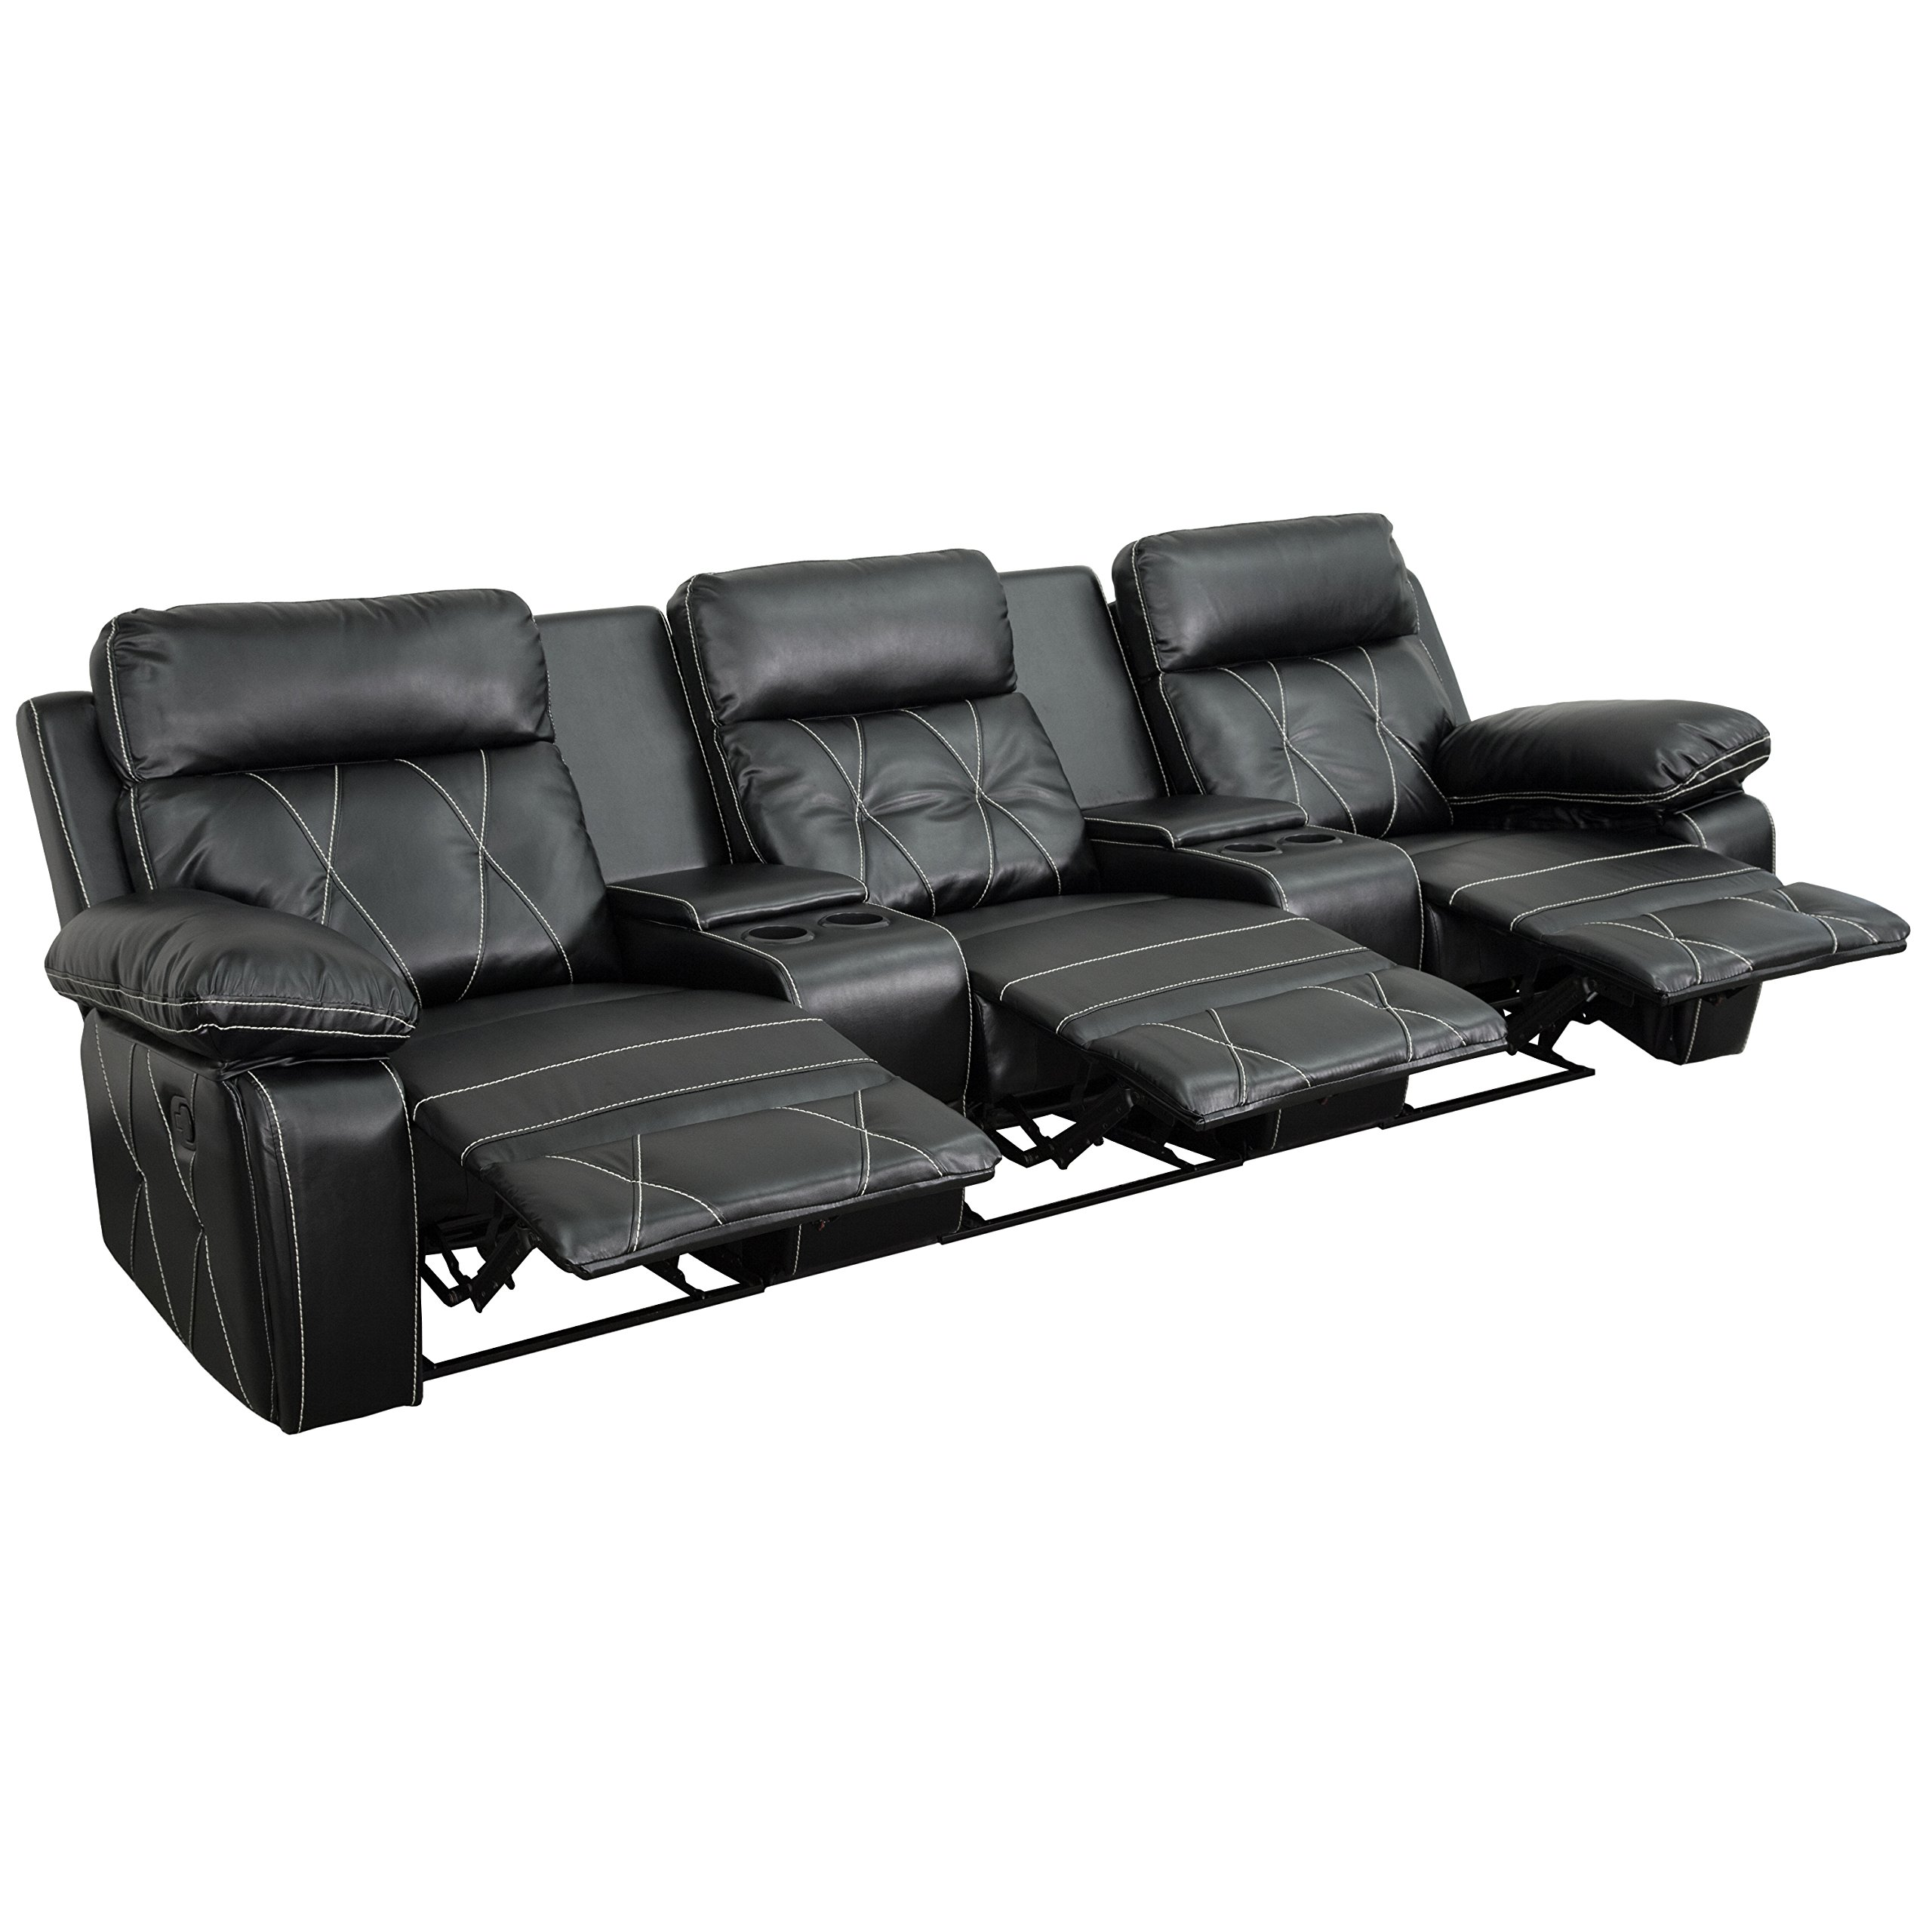 Flash Furniture Reel Comfort Series 3-Seat Reclining Black Leather Theater Seating Unit with Straight Cup Holders by Flash Furniture